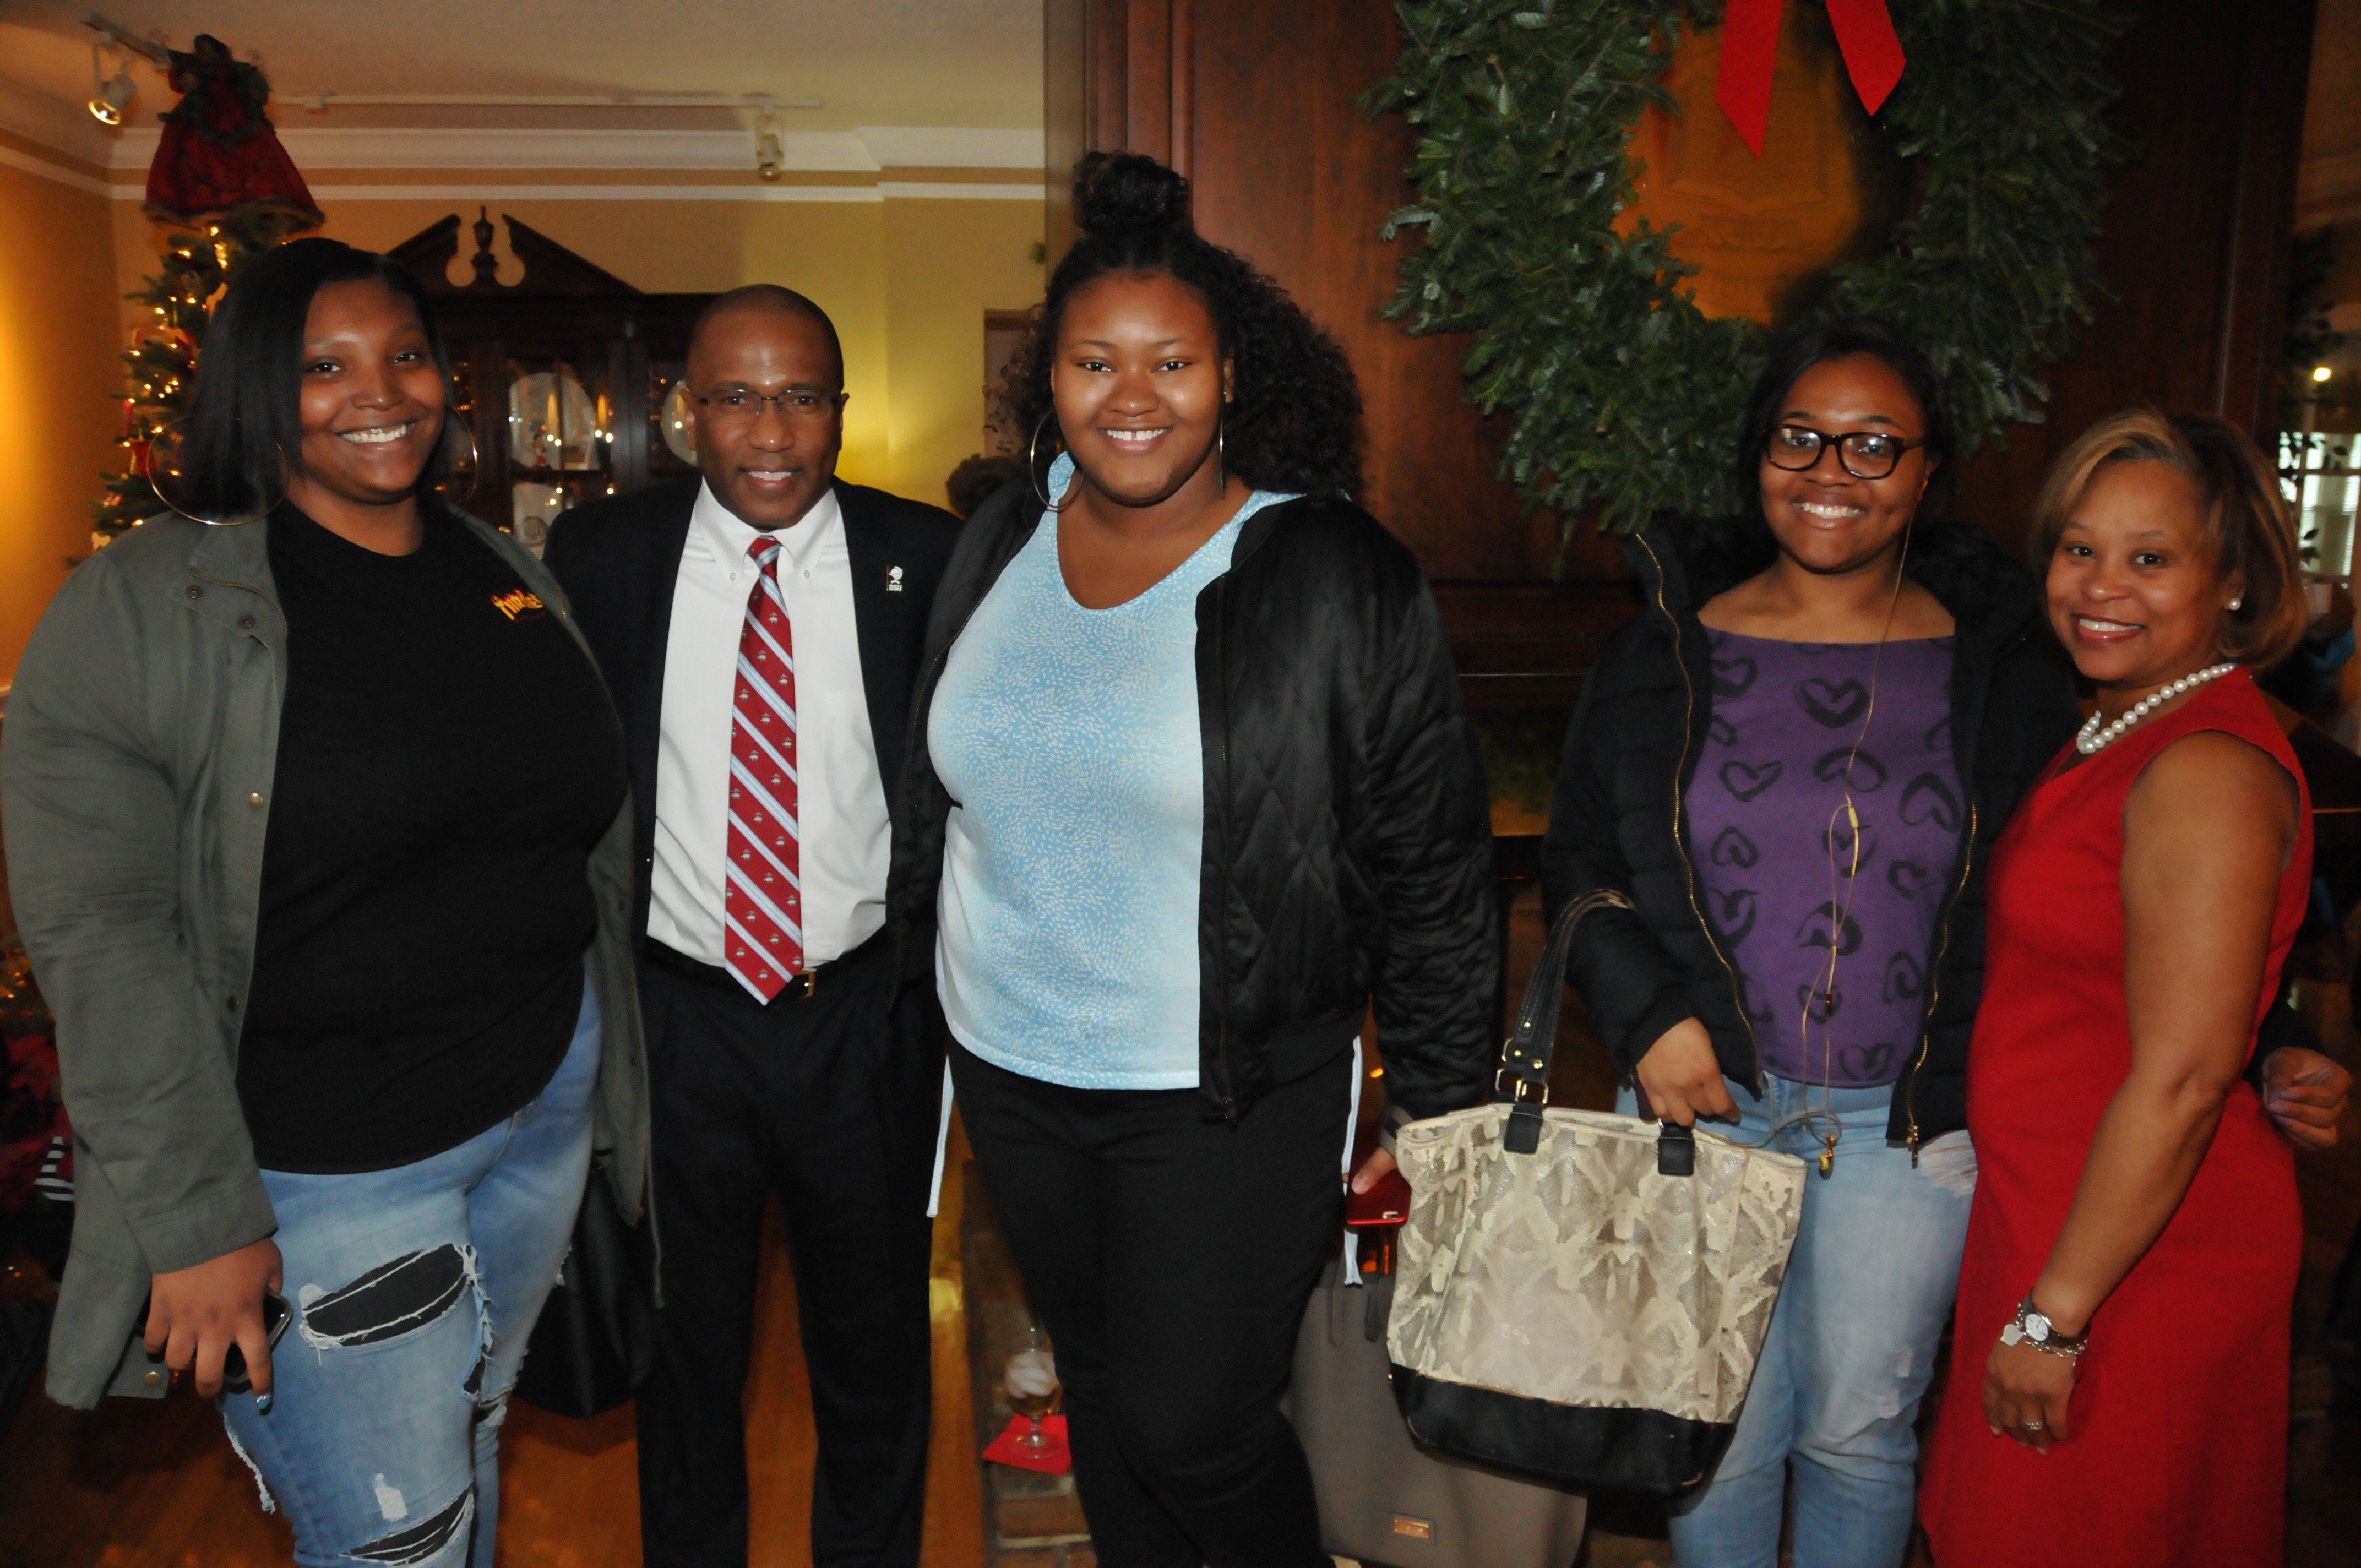 DSU President Harry L. Williams and First Lady Dr. Robin Williams pose with a group DSU students during their Christmas celebration at their residence.